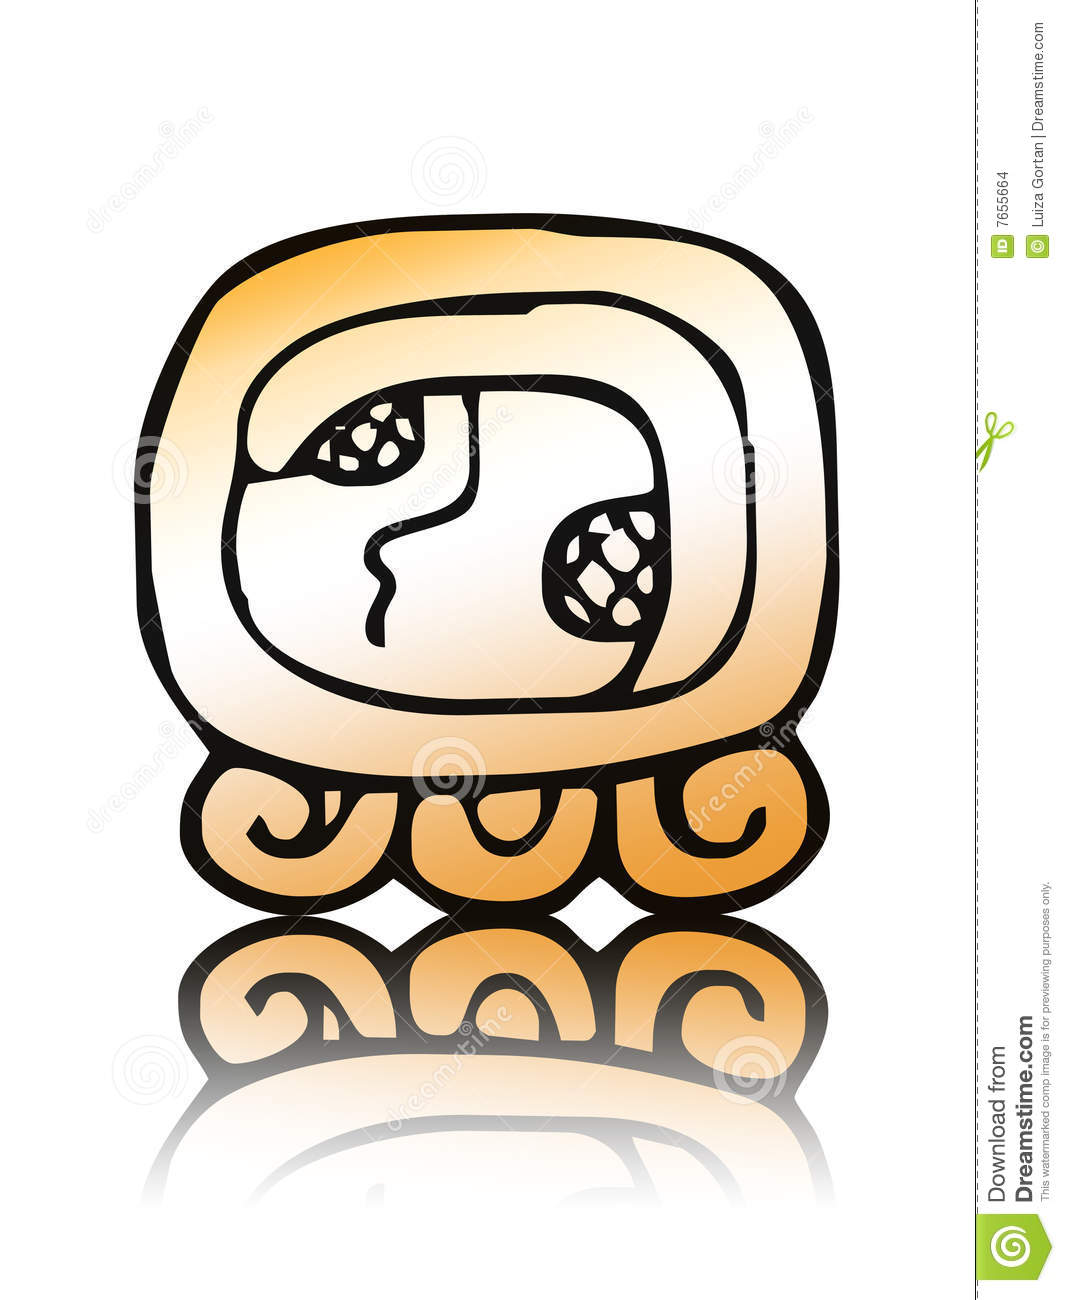 Calendario Maya Vector.17 Kaban Maya Calendar Seal Vector Stock Vector